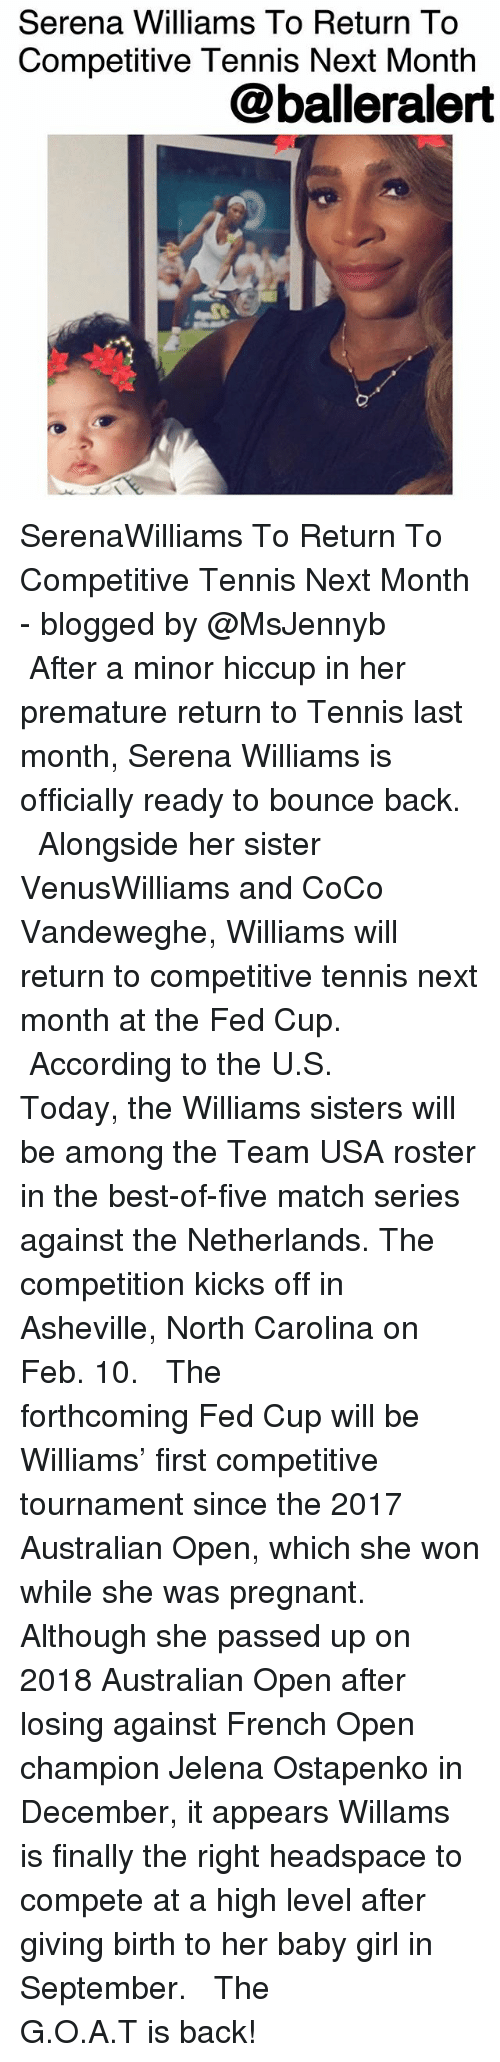 CoCo, Memes, and Pregnant: Serena Williams To Return To  Competitive Tennis Next Month  @balleralert SerenaWilliams To Return To Competitive Tennis Next Month - blogged by @MsJennyb ⠀⠀⠀⠀⠀⠀⠀ ⠀⠀⠀⠀⠀⠀⠀ After a minor hiccup in her premature return to Tennis last month, Serena Williams is officially ready to bounce back. ⠀⠀⠀⠀⠀⠀⠀ ⠀⠀⠀⠀⠀⠀⠀ Alongside her sister VenusWilliams and CoCo Vandeweghe, Williams will return to competitive tennis next month at the Fed Cup. ⠀⠀⠀⠀⠀⠀⠀ ⠀⠀⠀⠀⠀⠀⠀ According to the U.S. Today, the Williams sisters will be among the Team USA roster in the best-of-five match series against the Netherlands. The competition kicks off in Asheville, North Carolina on Feb. 10. ⠀⠀⠀⠀⠀⠀⠀ ⠀⠀⠀⠀⠀⠀⠀ The forthcoming Fed Cup will be Williams' first competitive tournament since the 2017 Australian Open, which she won while she was pregnant. Although she passed up on 2018 Australian Open after losing against French Open champion Jelena Ostapenko in December, it appears Willams is finally the right headspace to compete at a high level after giving birth to her baby girl in September. ⠀⠀⠀⠀⠀⠀⠀ ⠀⠀⠀⠀⠀⠀⠀ The G.O.A.T is back!